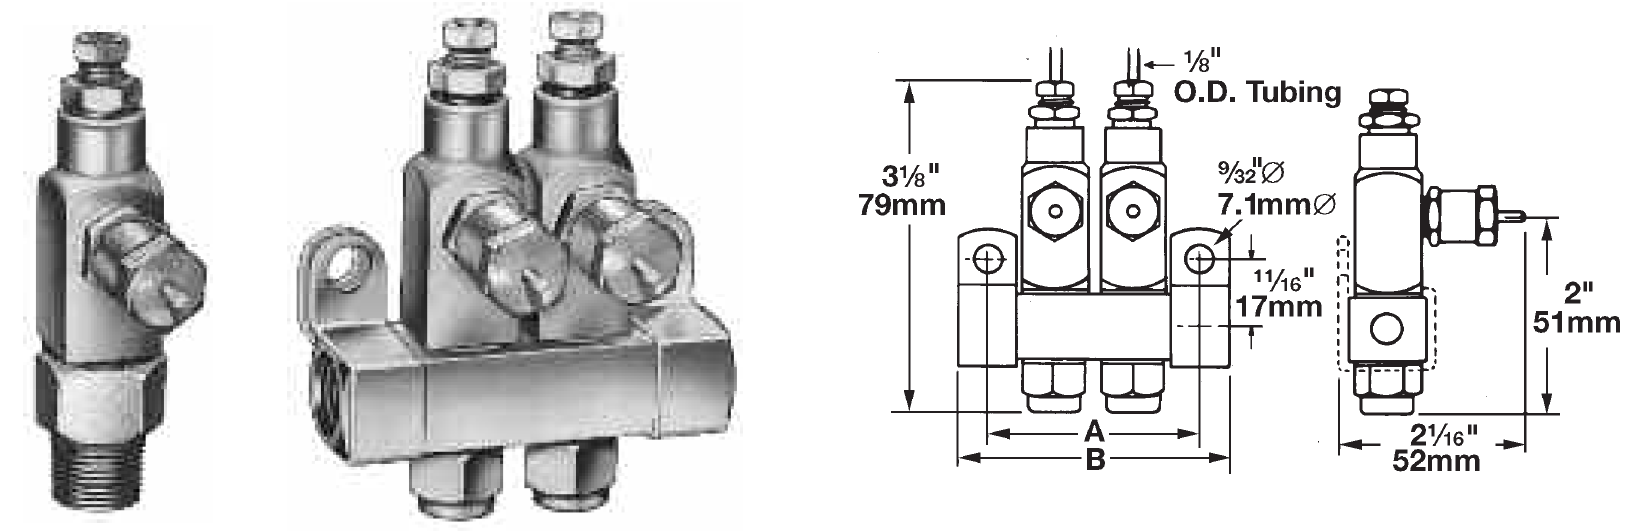 Centromatic Injector SL 32